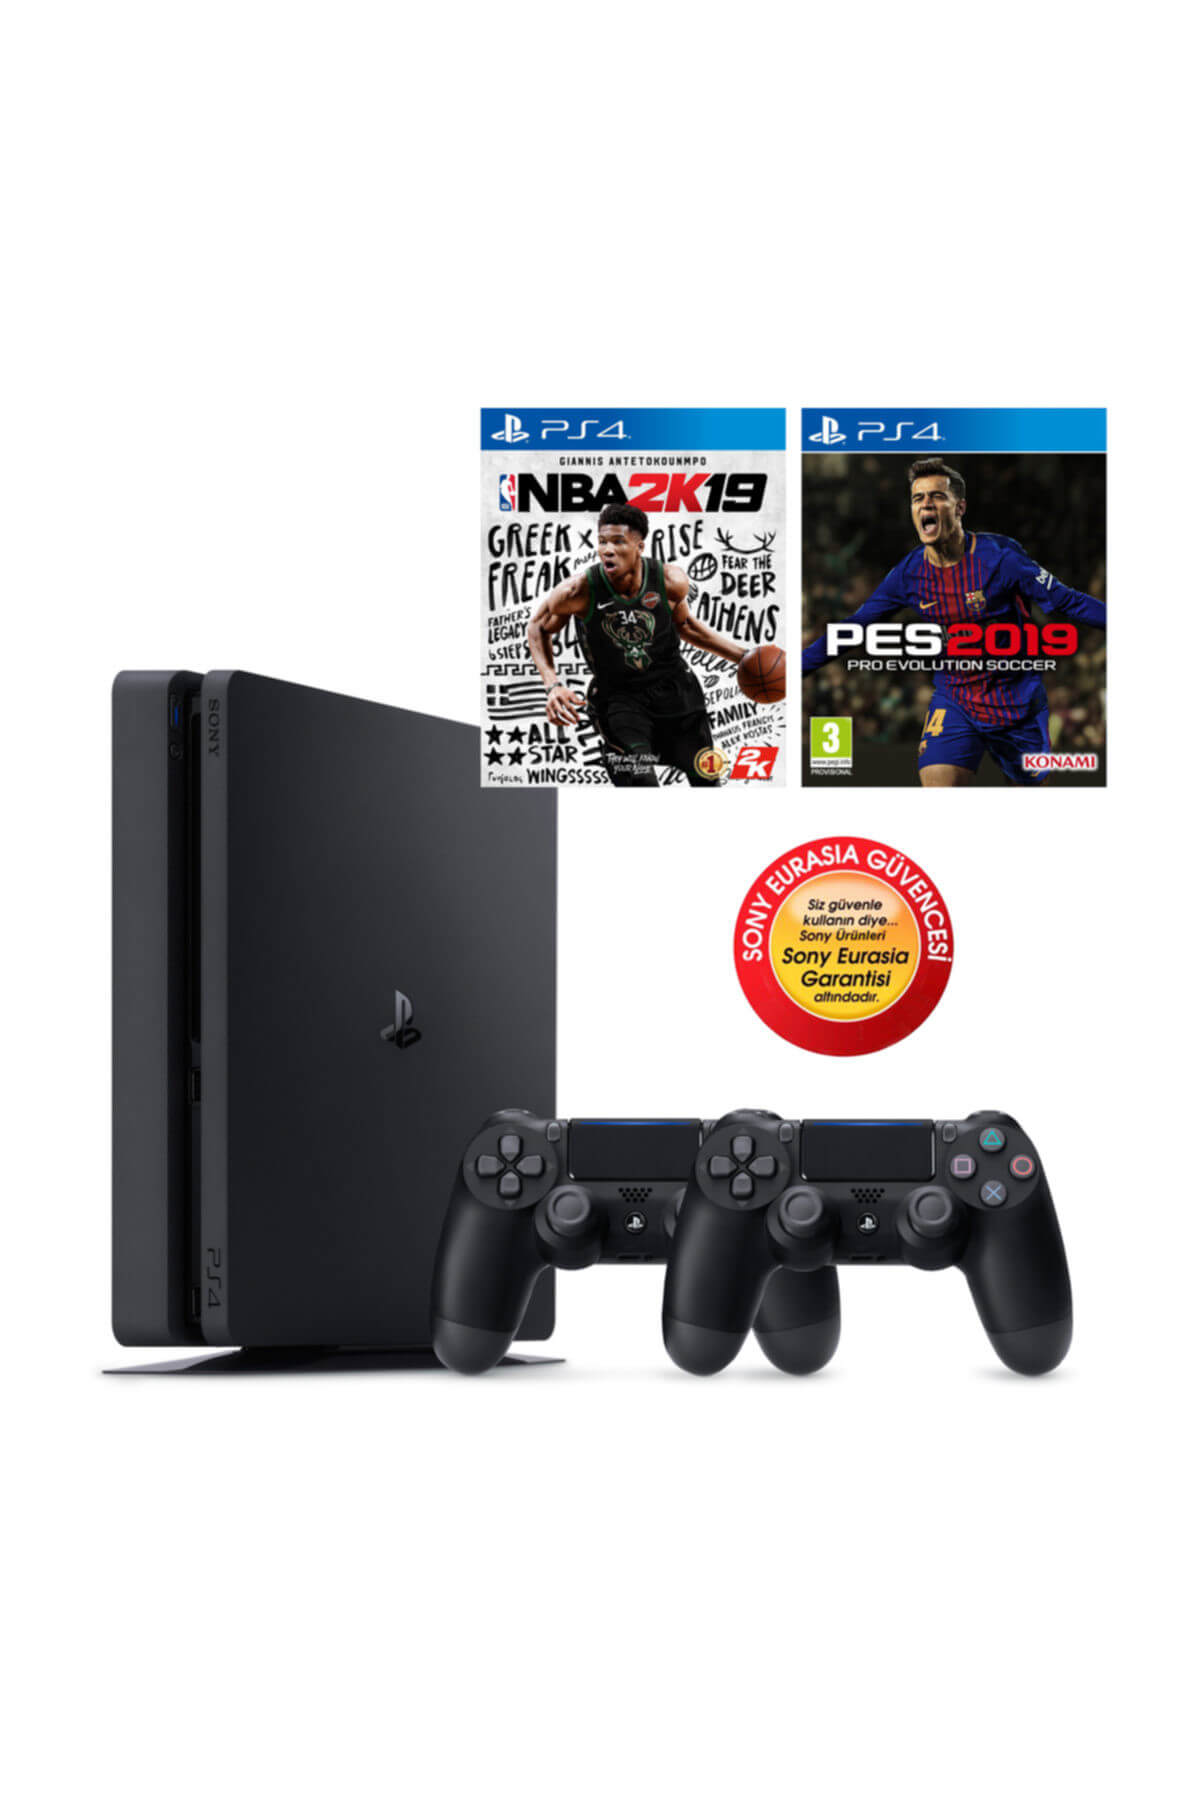 Sony Ps4 Slim 500gb Oyun Konsolu Eurasia Garantili + Ps4 Pes 19 Nba 2k19 2.